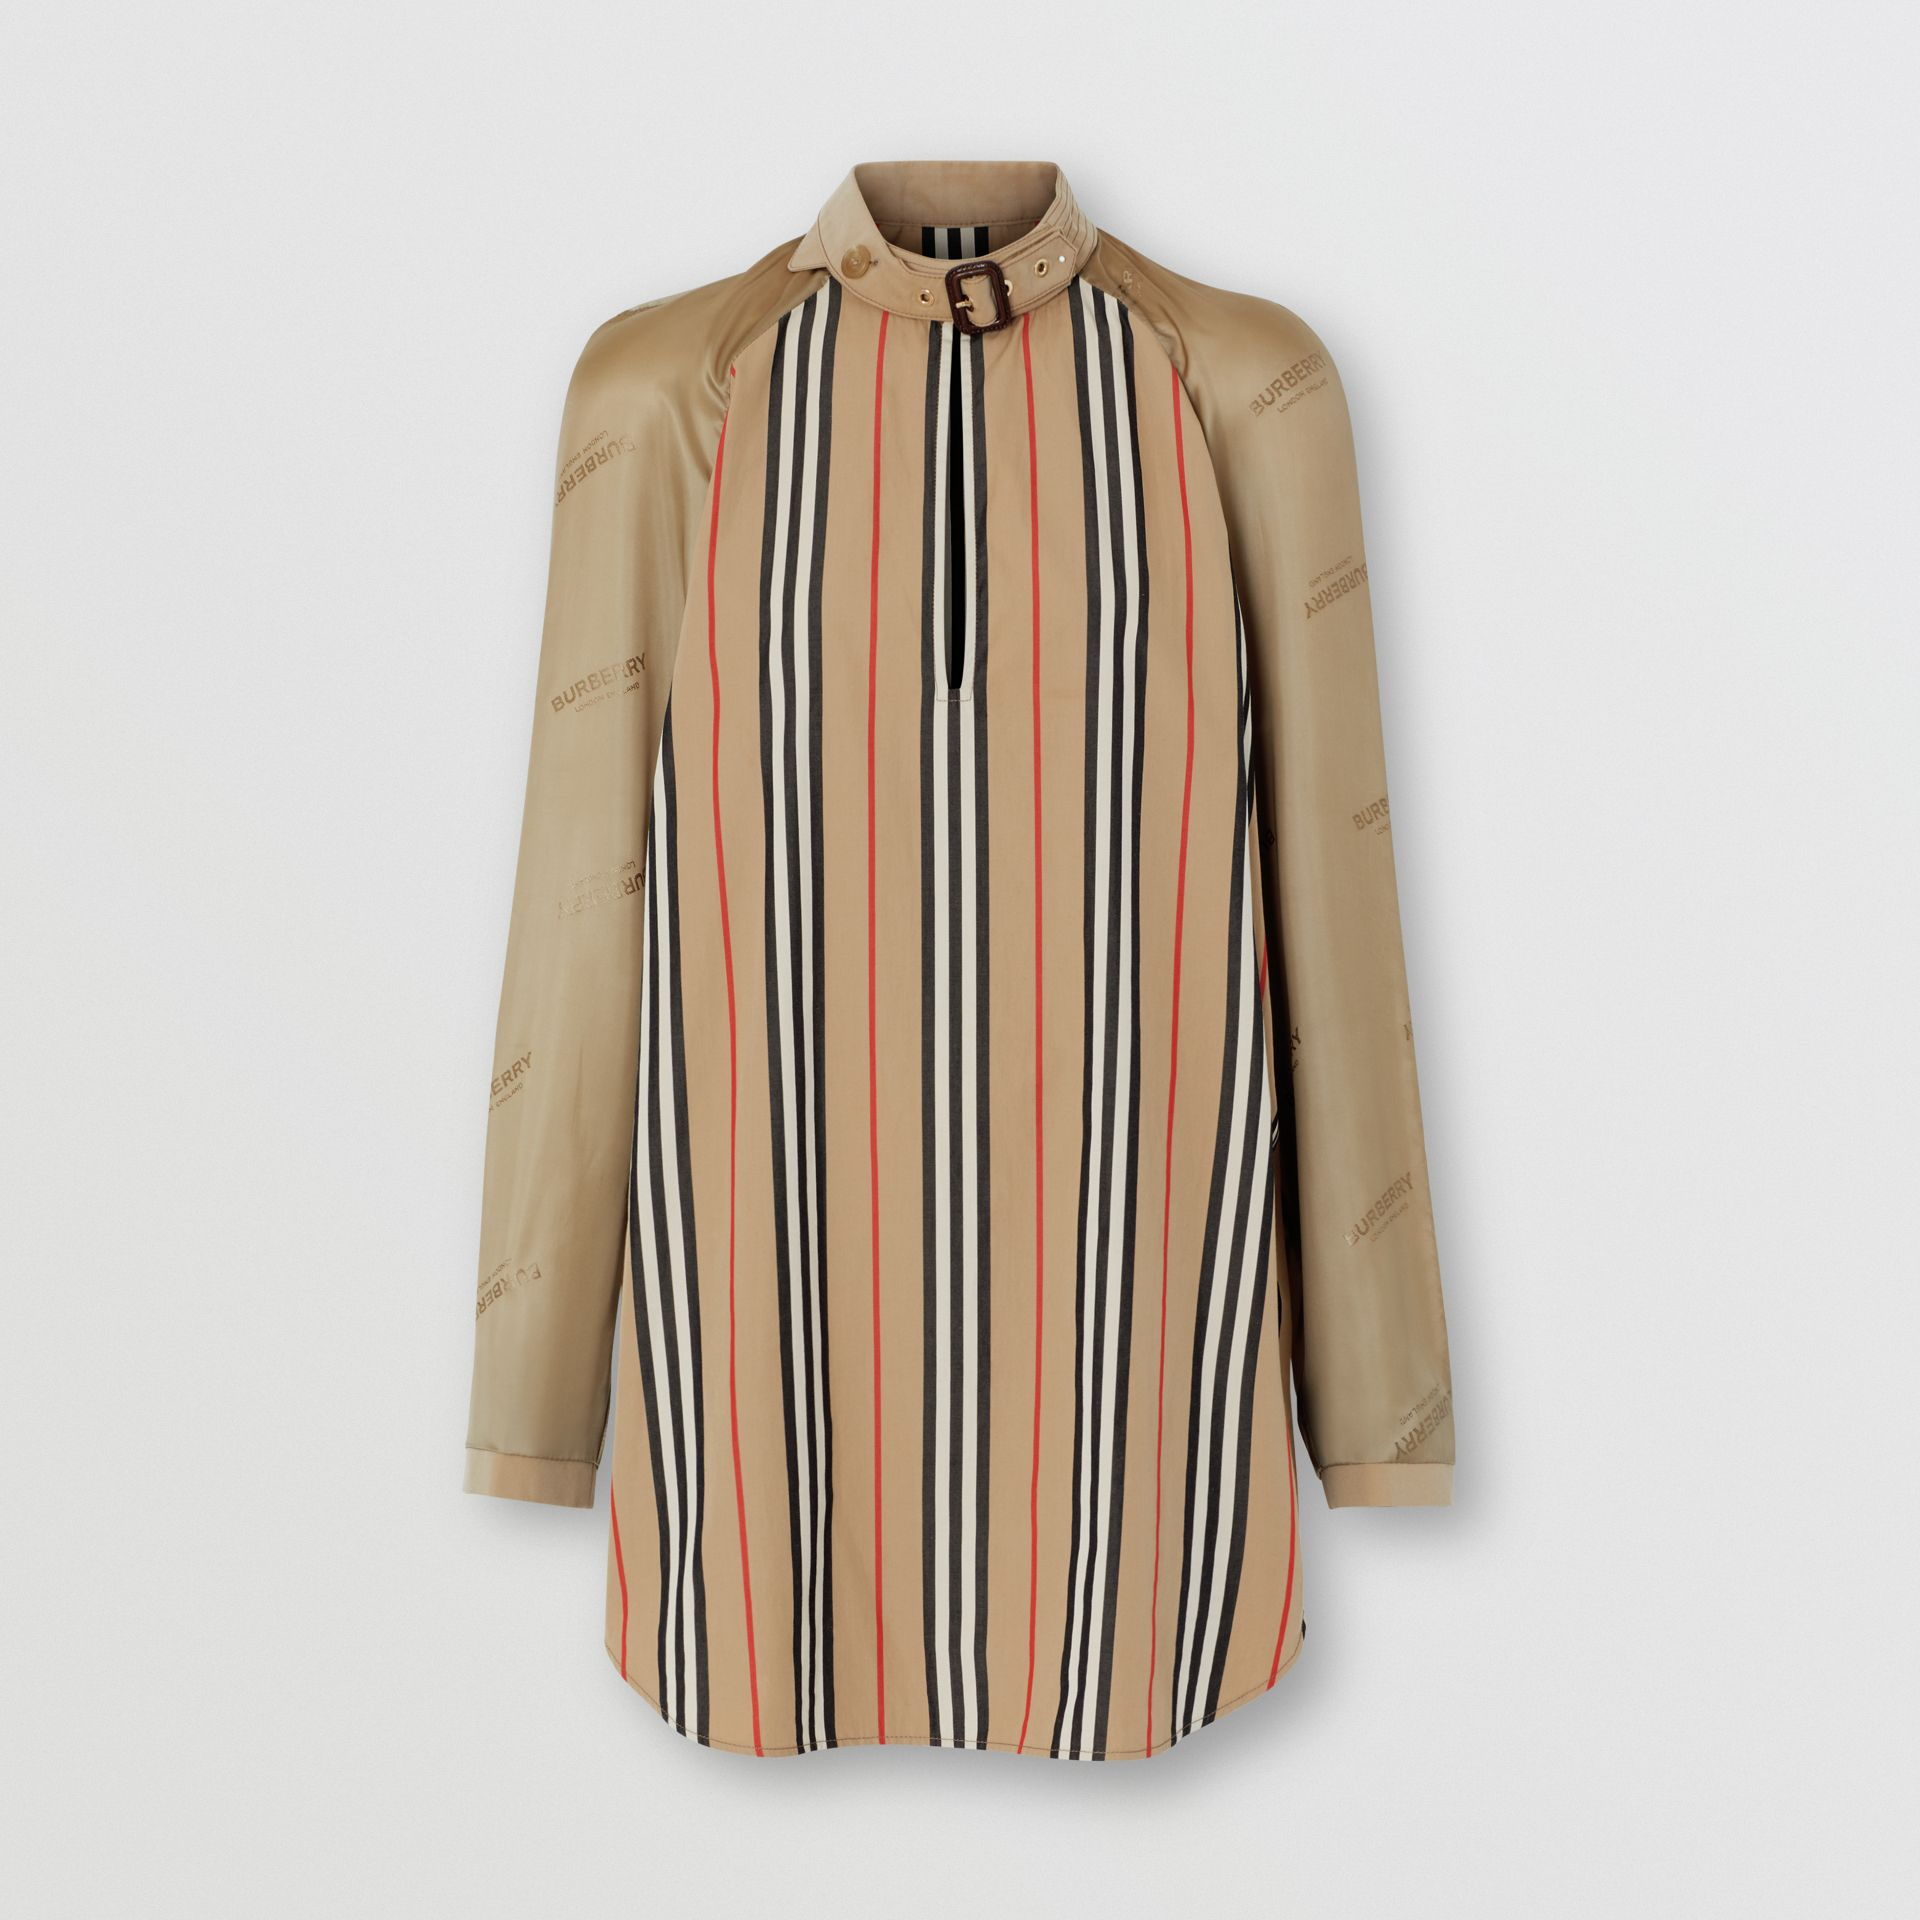 Cut-out Detail Icon Stripe Cotton Blouse in Archive Beige - Women | Burberry - gallery image 3